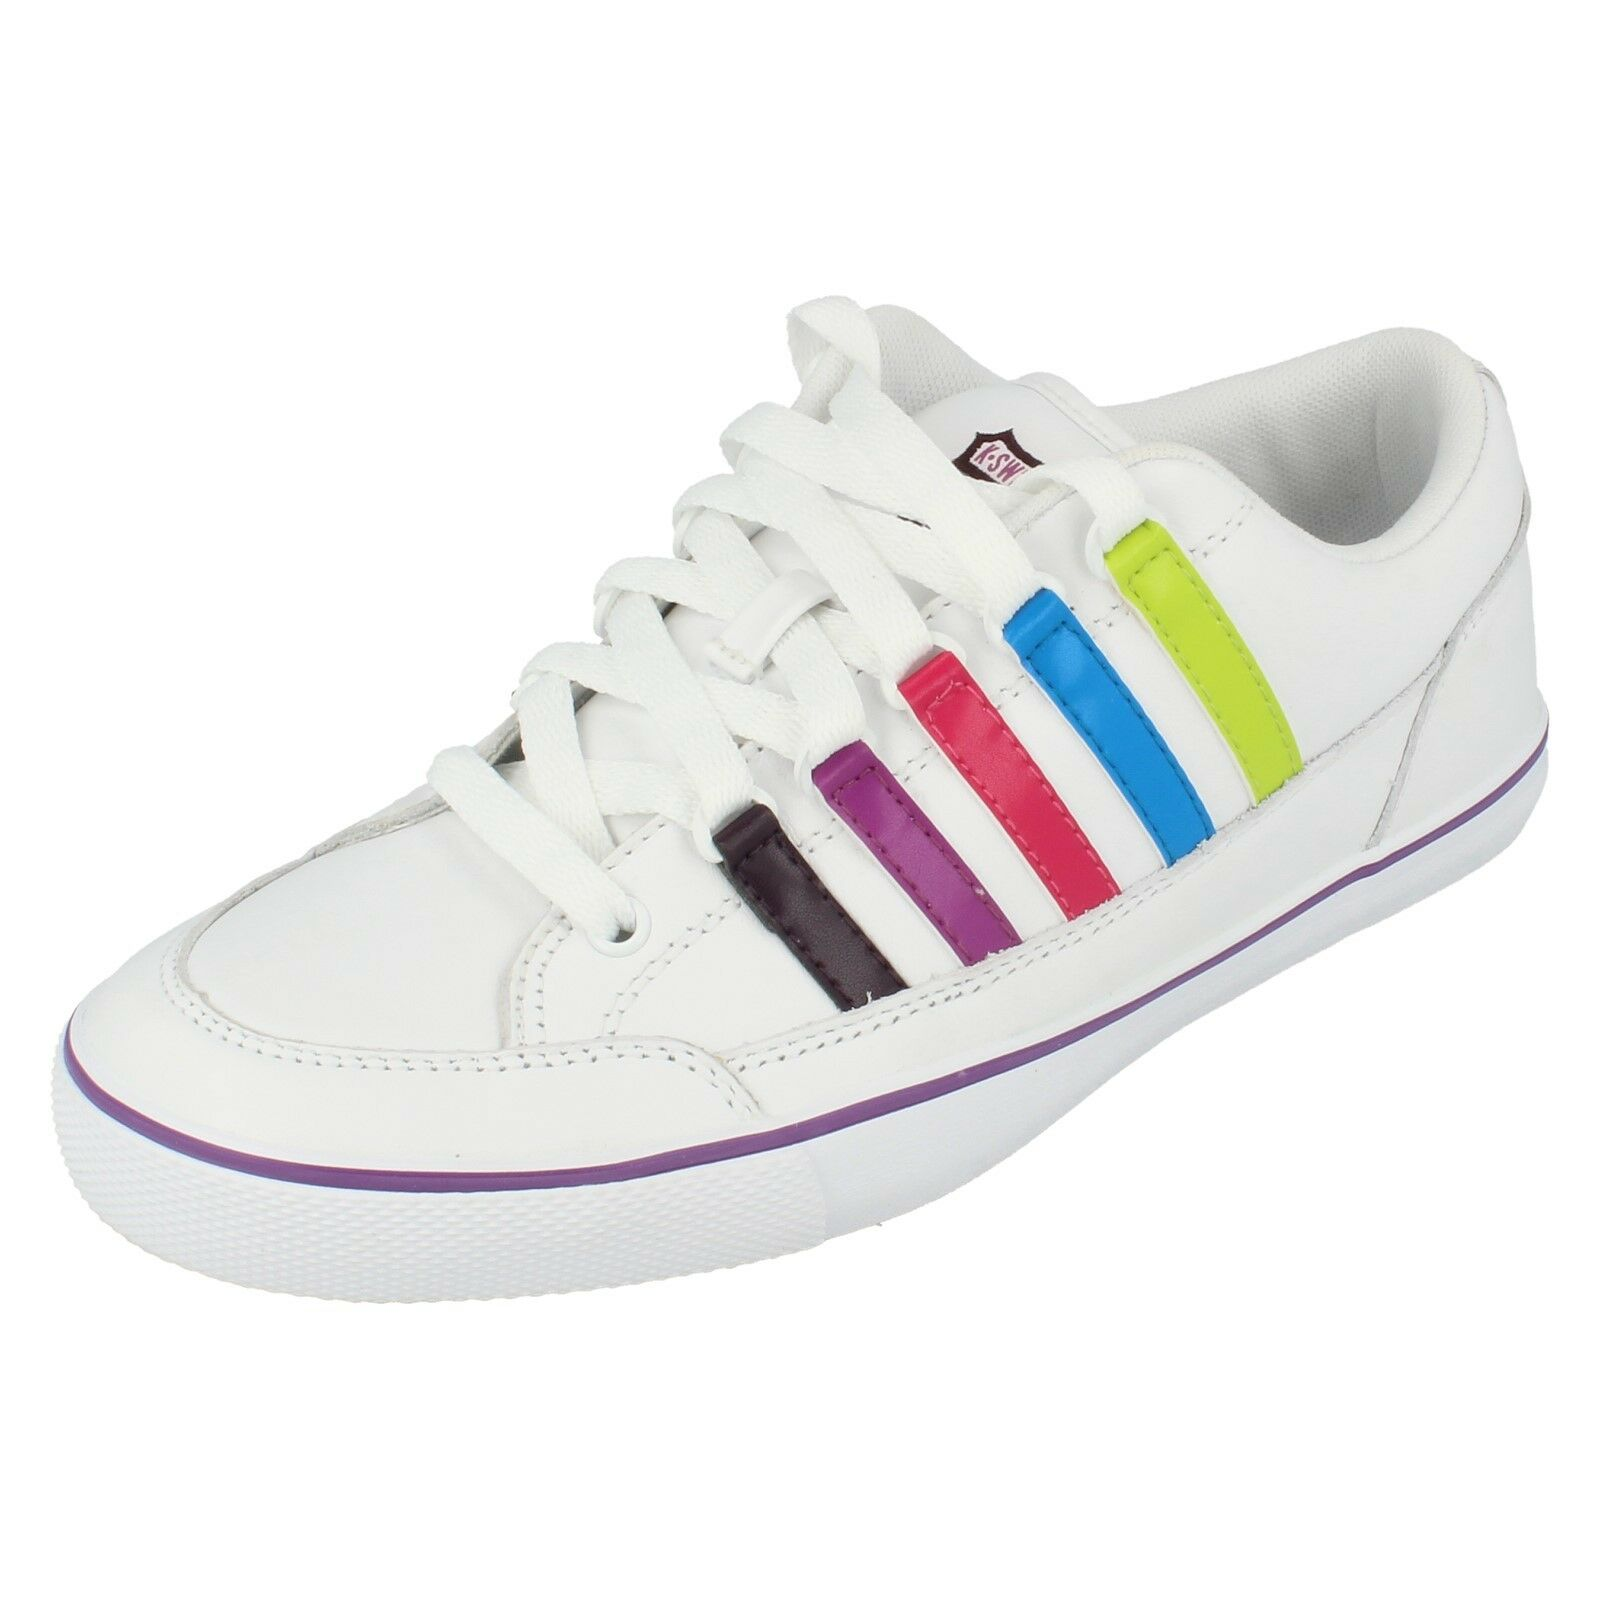 Ladies surf and sand white multi trainers by K swiss Retail price